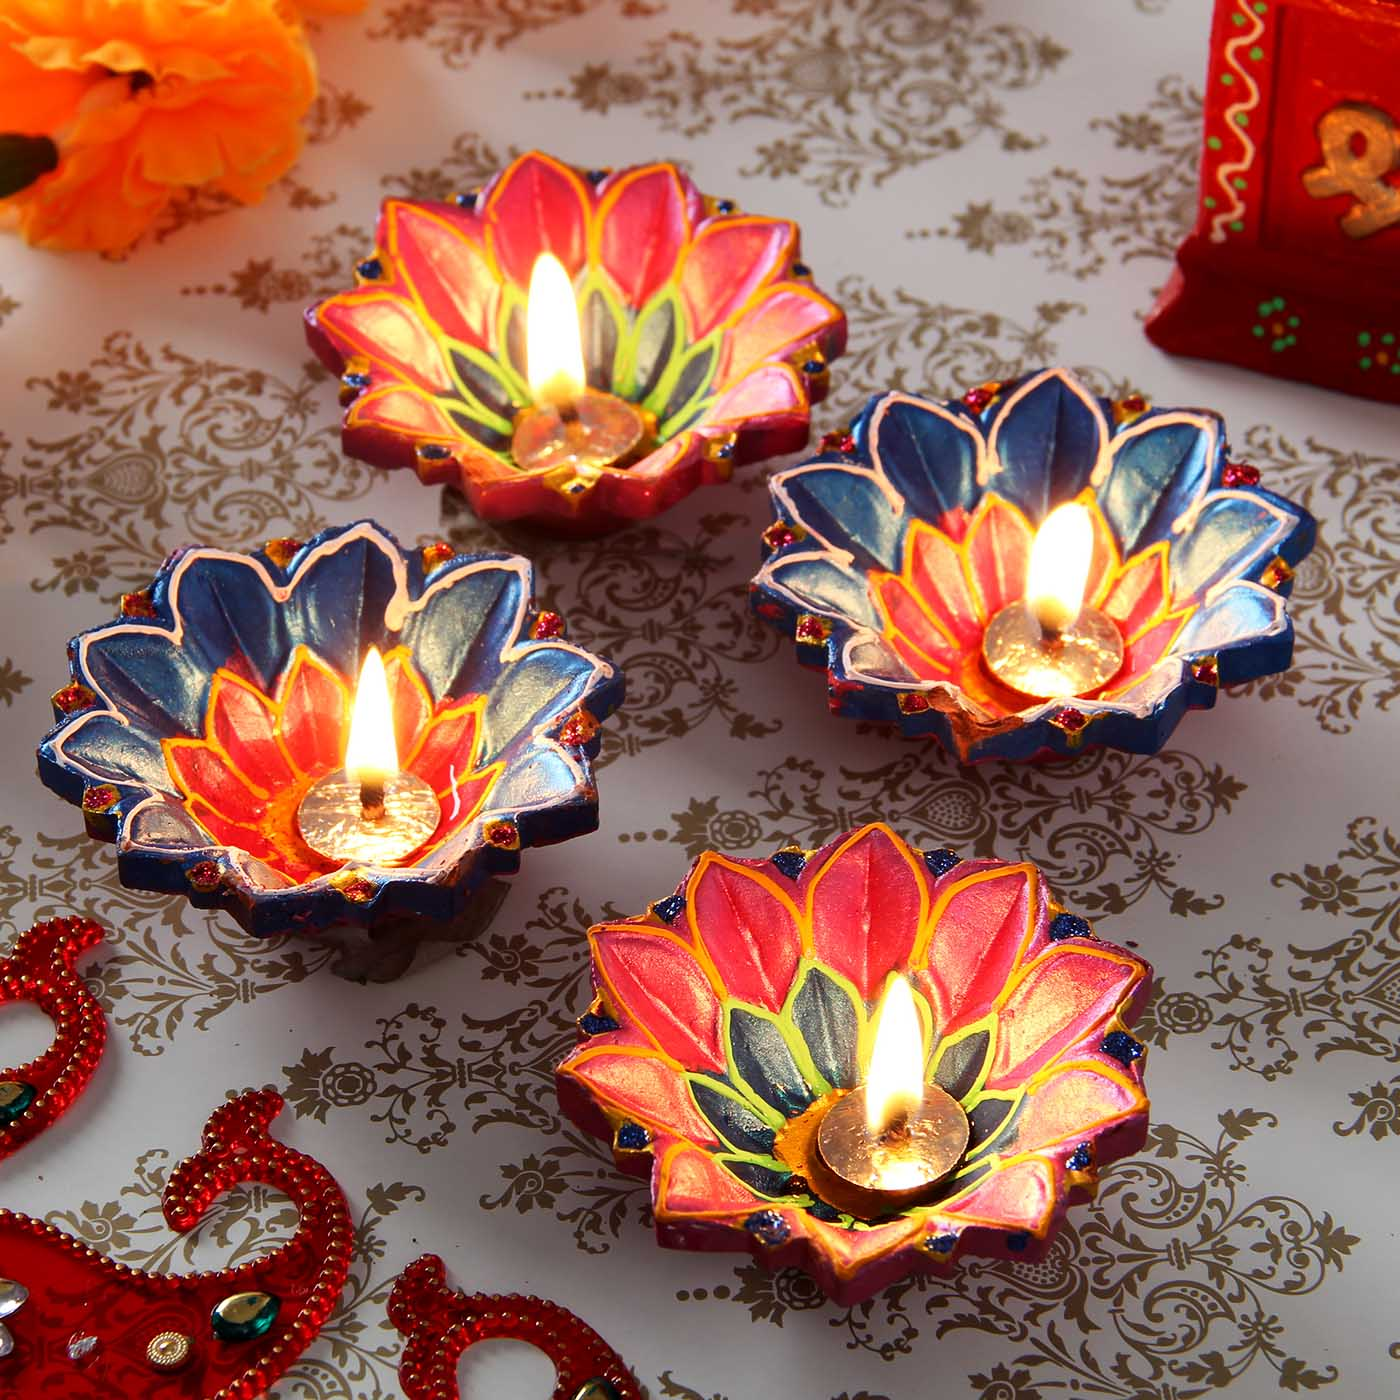 7 Unique Ways of Celebrating Diwali for Everyone's Happiness